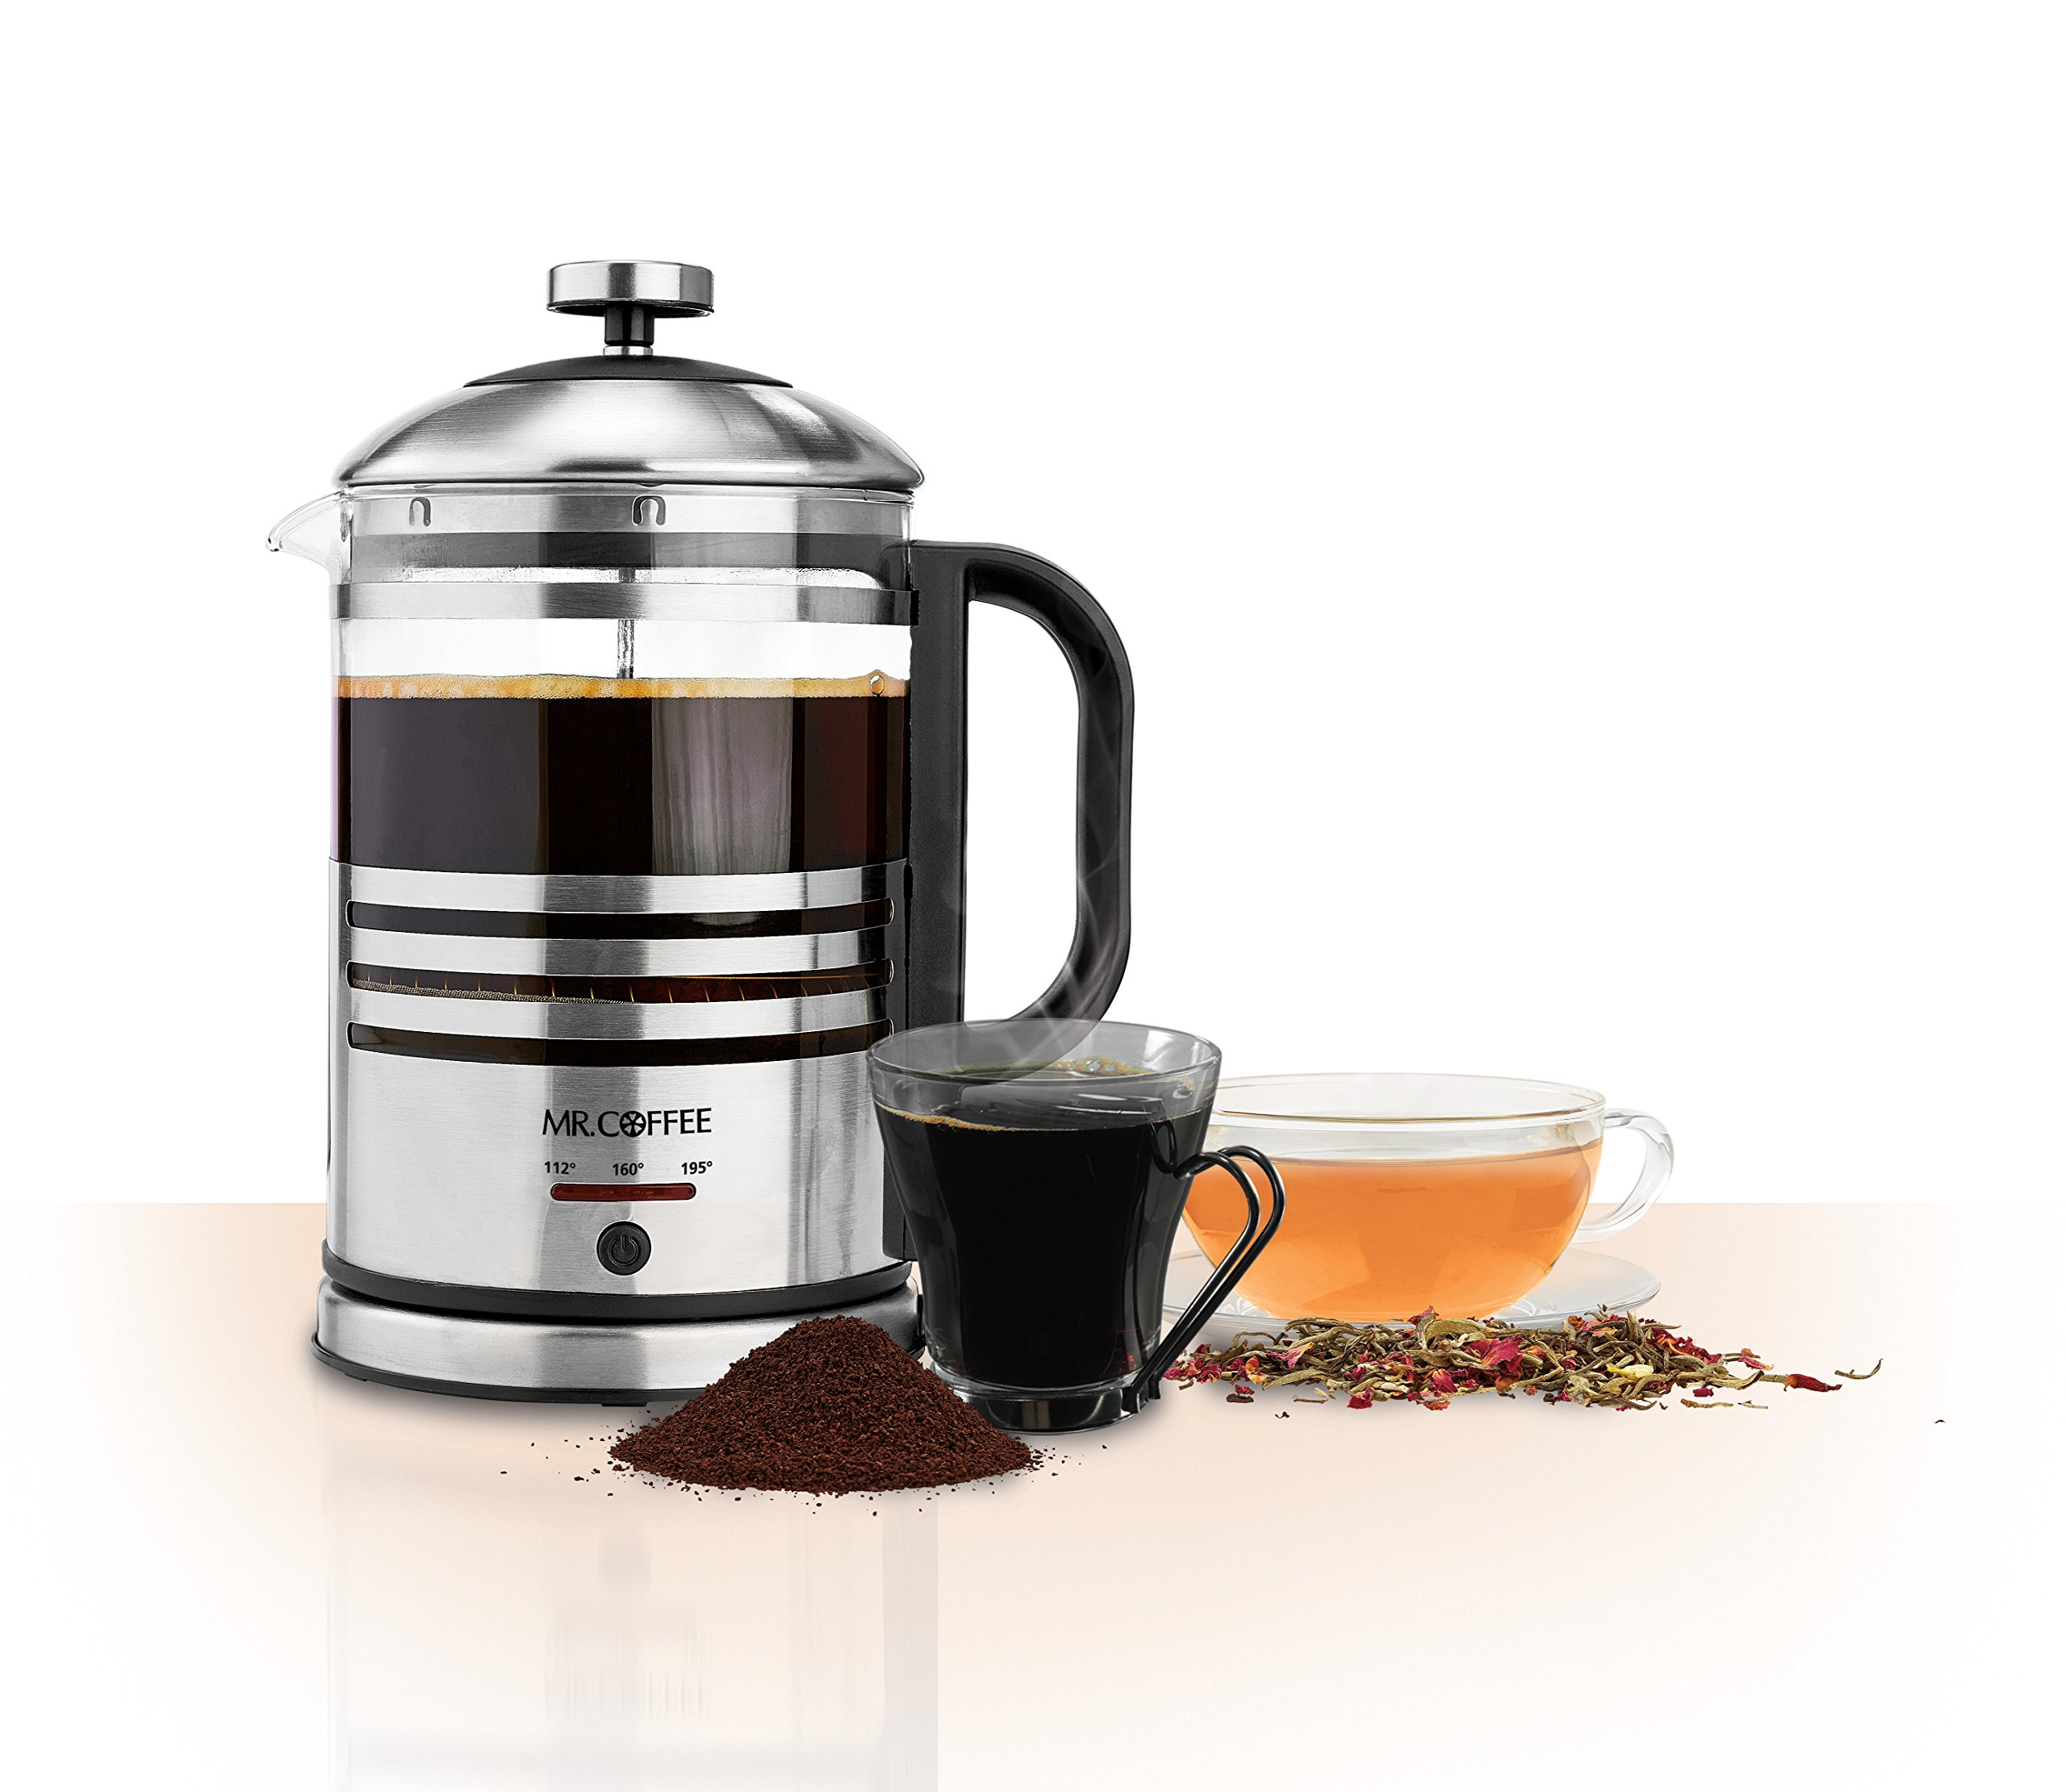 Can i have hot water in french press